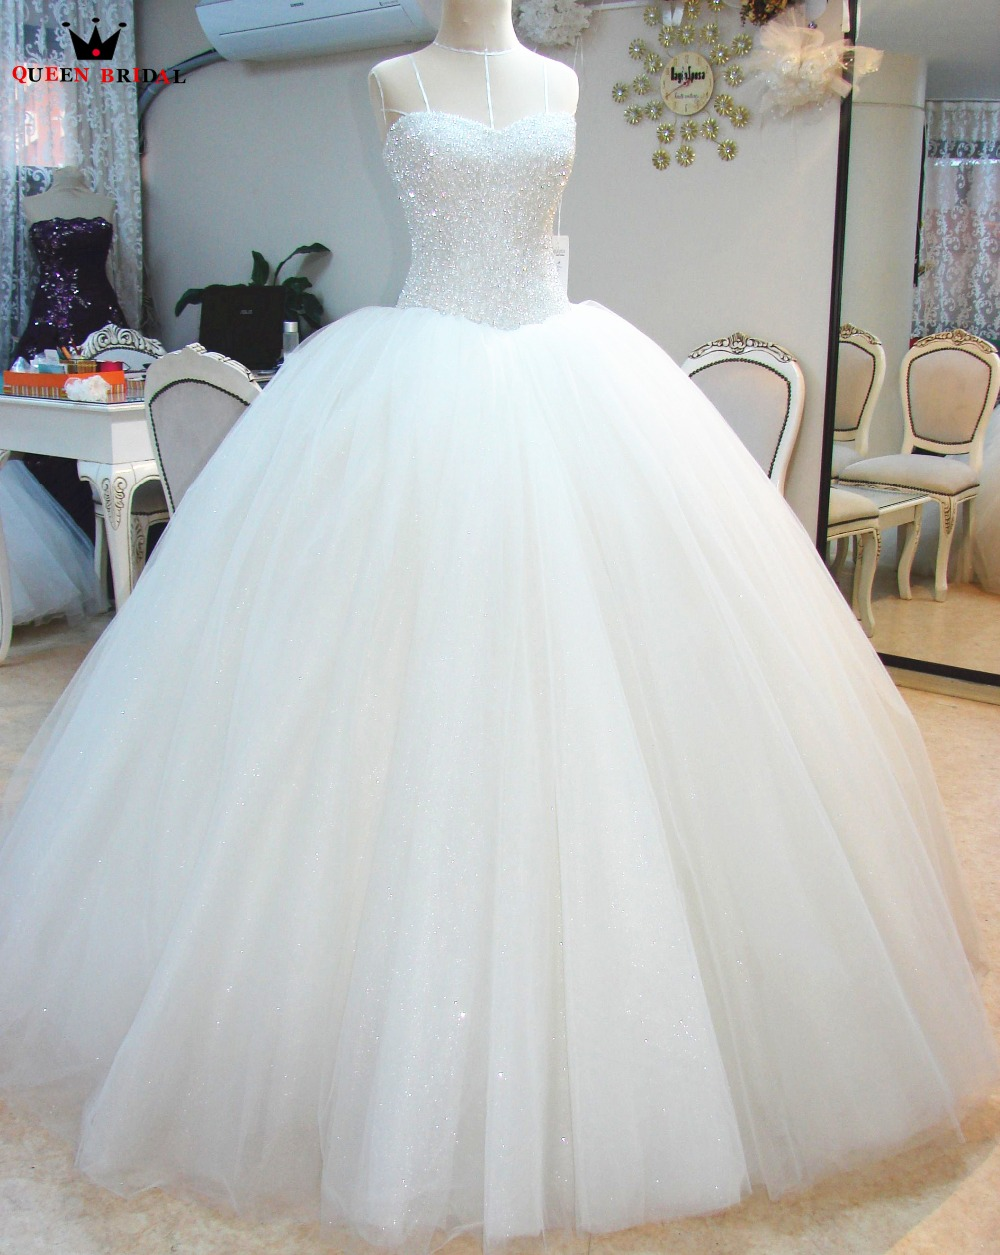 Custom Made QUEEN BRIDAL 2020 Ball Gown Puffy Wedding Dress Vestidos De Novias Floor Length Wedding Gown Robe De MarieeHC88M